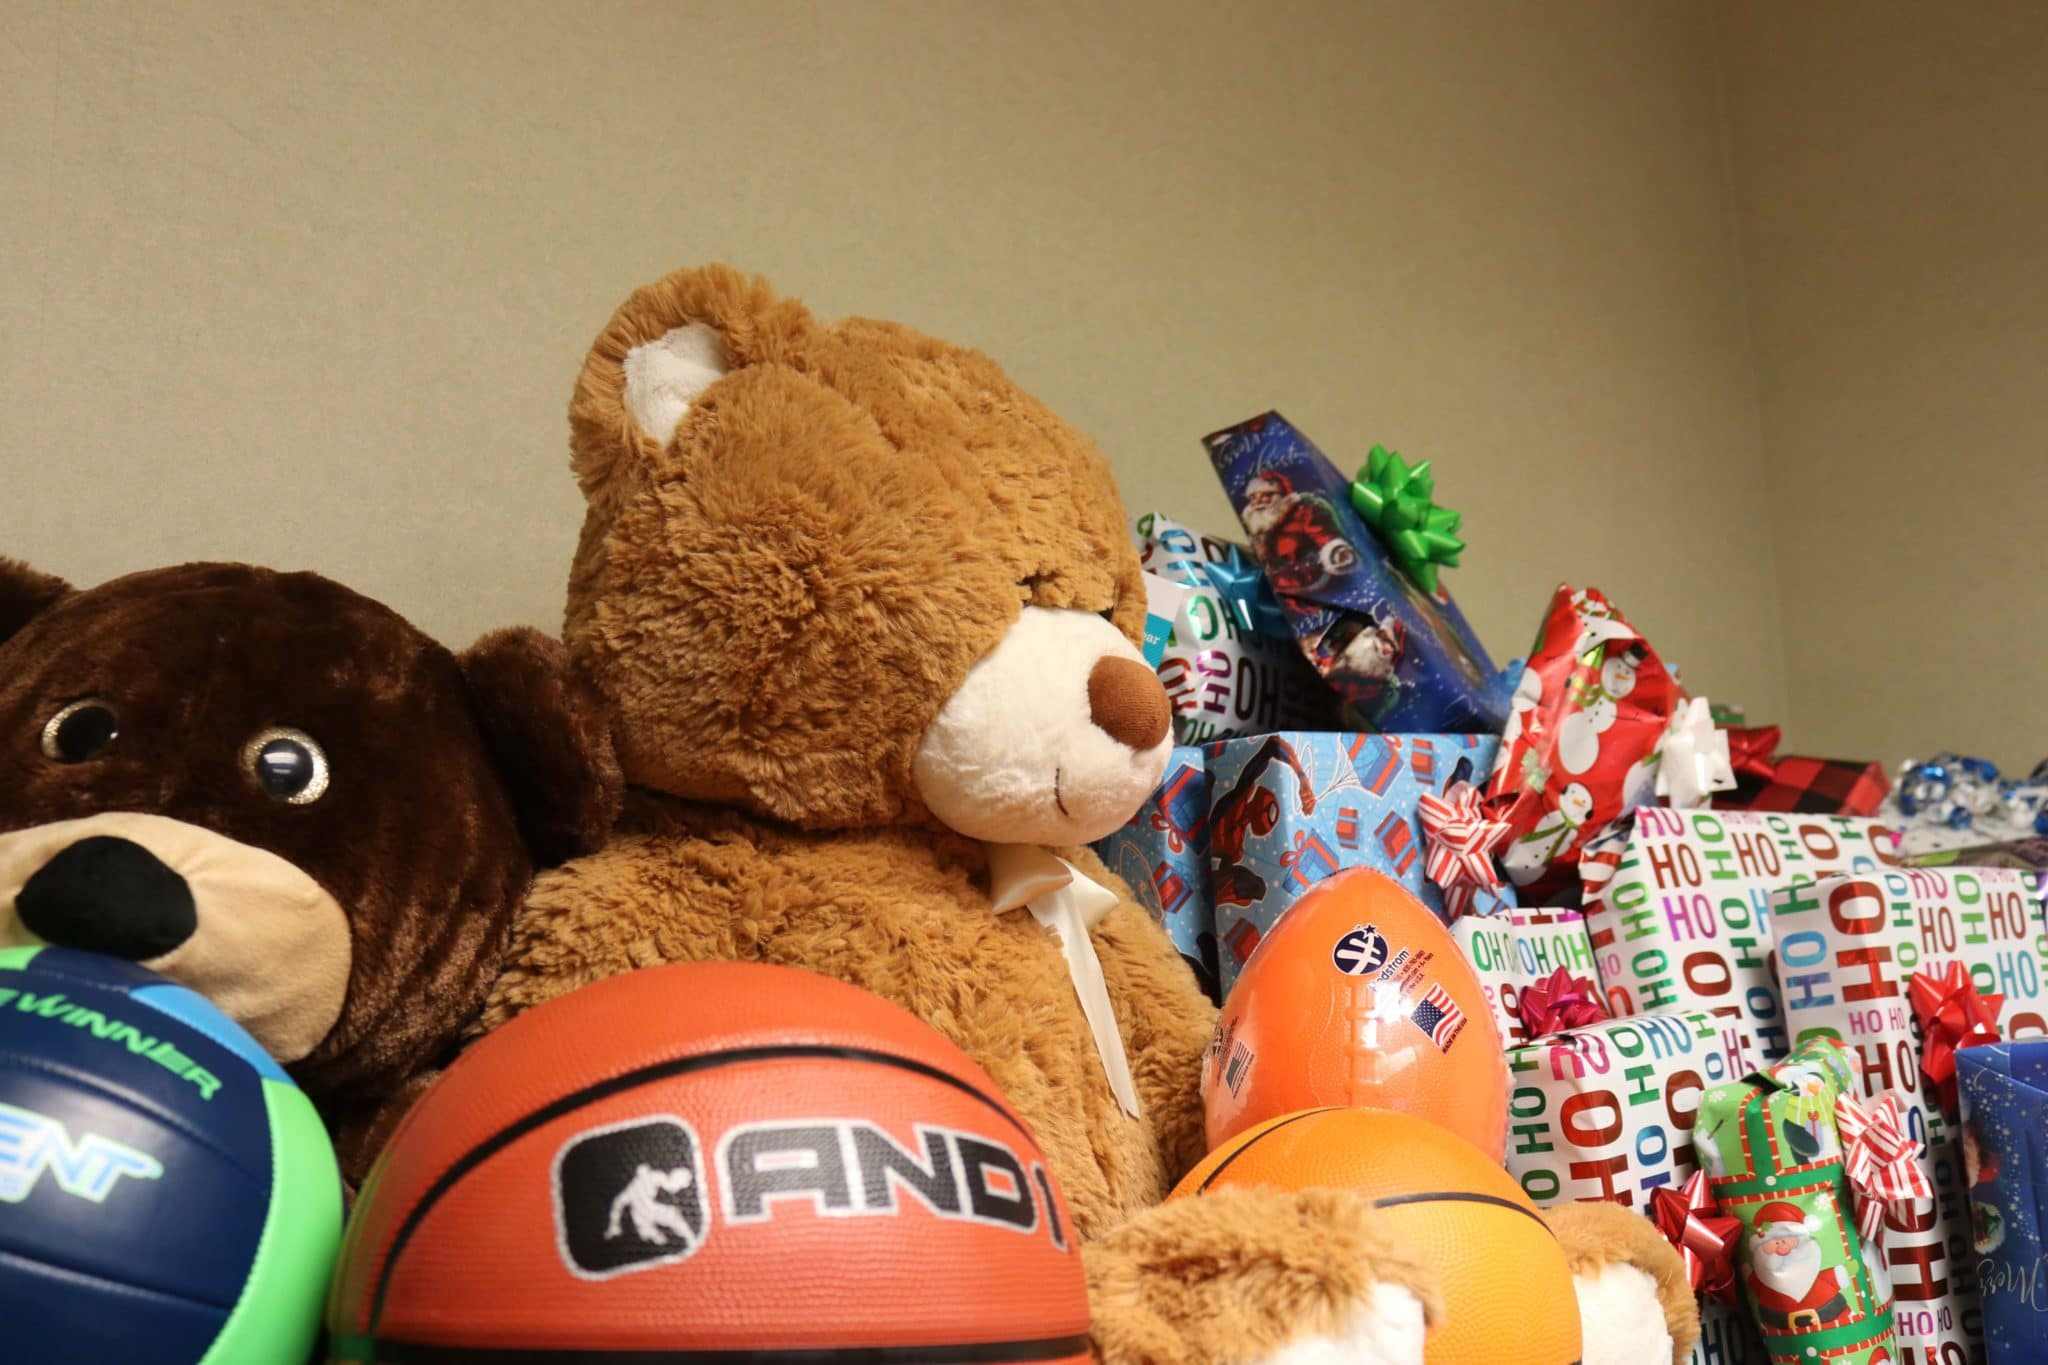 Family Resource Advocate Program delivers Christmas gifts to children in need